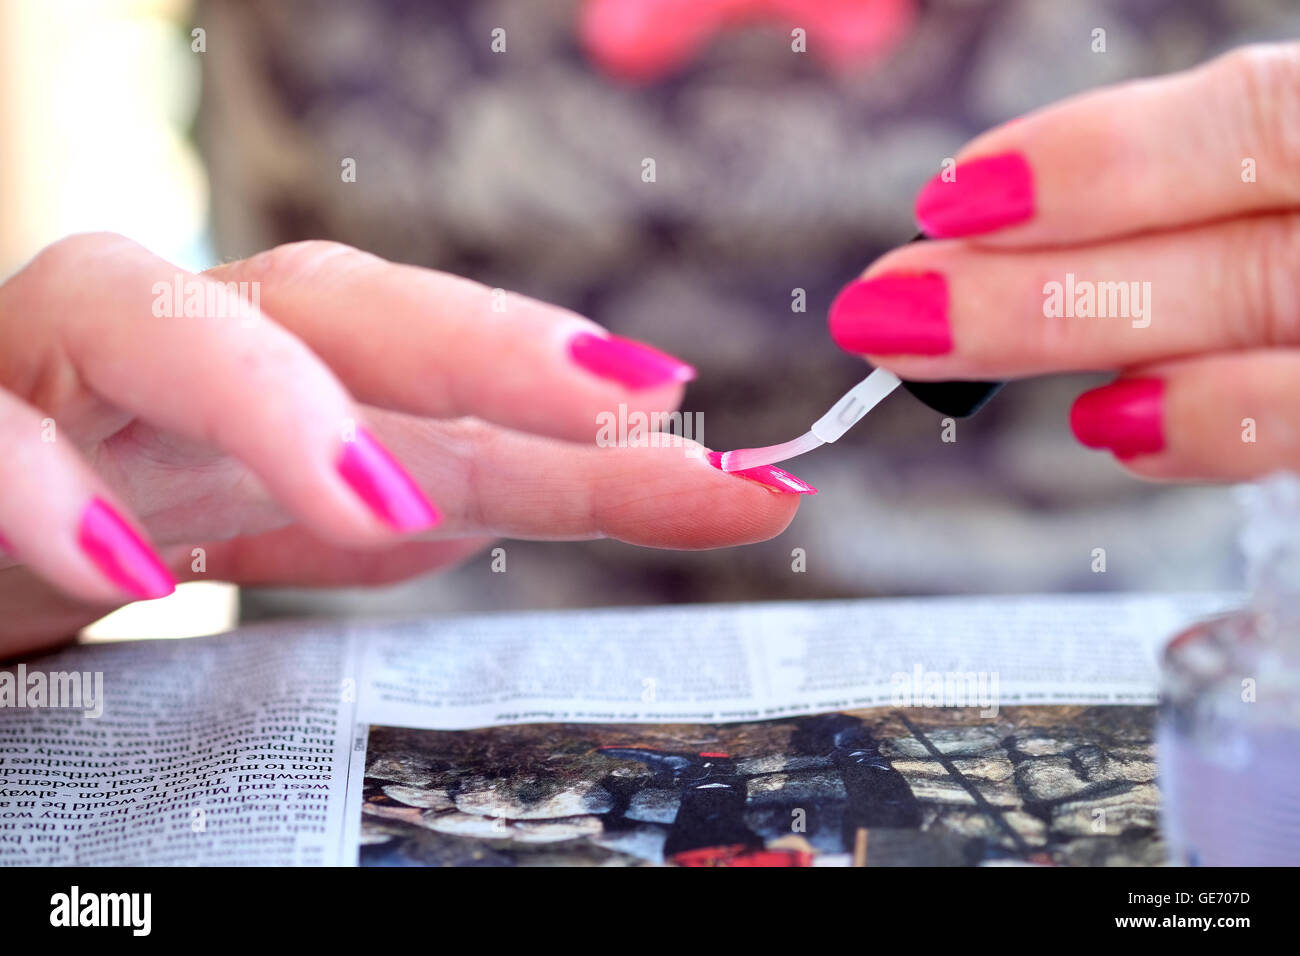 a female applying bright pink nail varnish with a brush - Stock Image